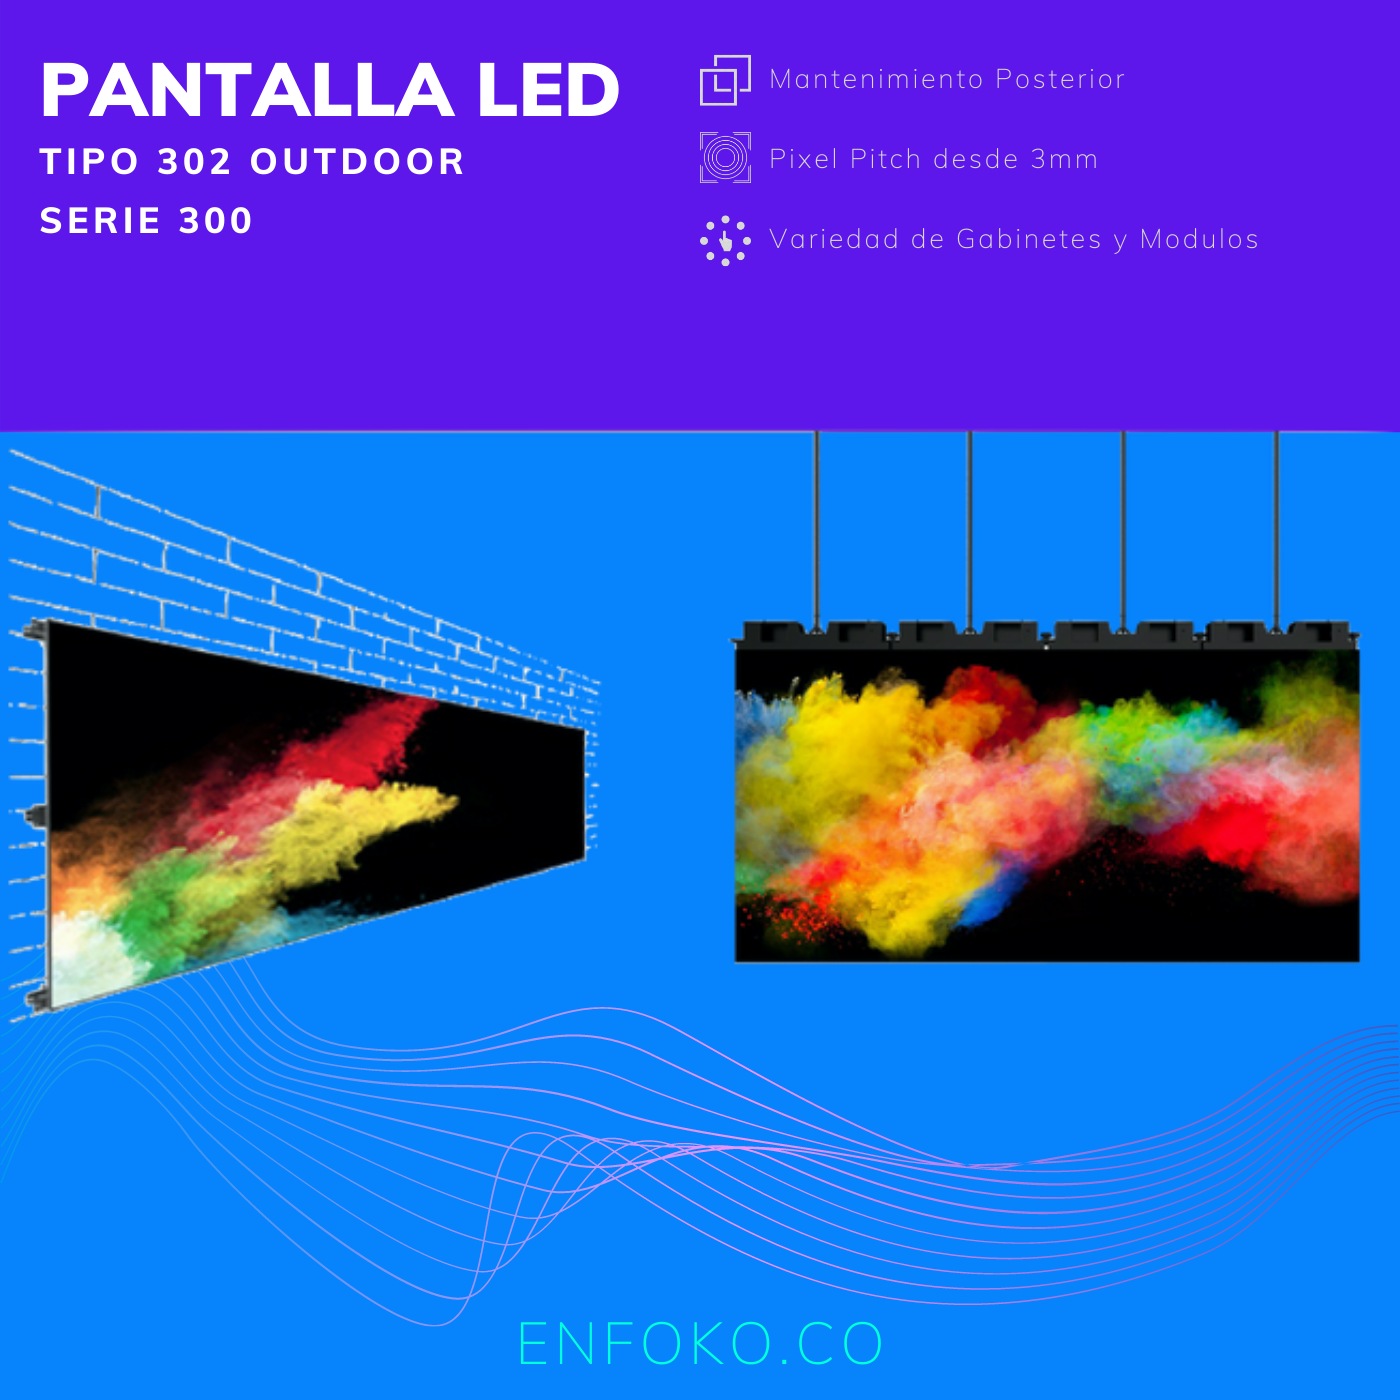 Tipo 302 - Pantalla LED OUTDOOR / Exterior